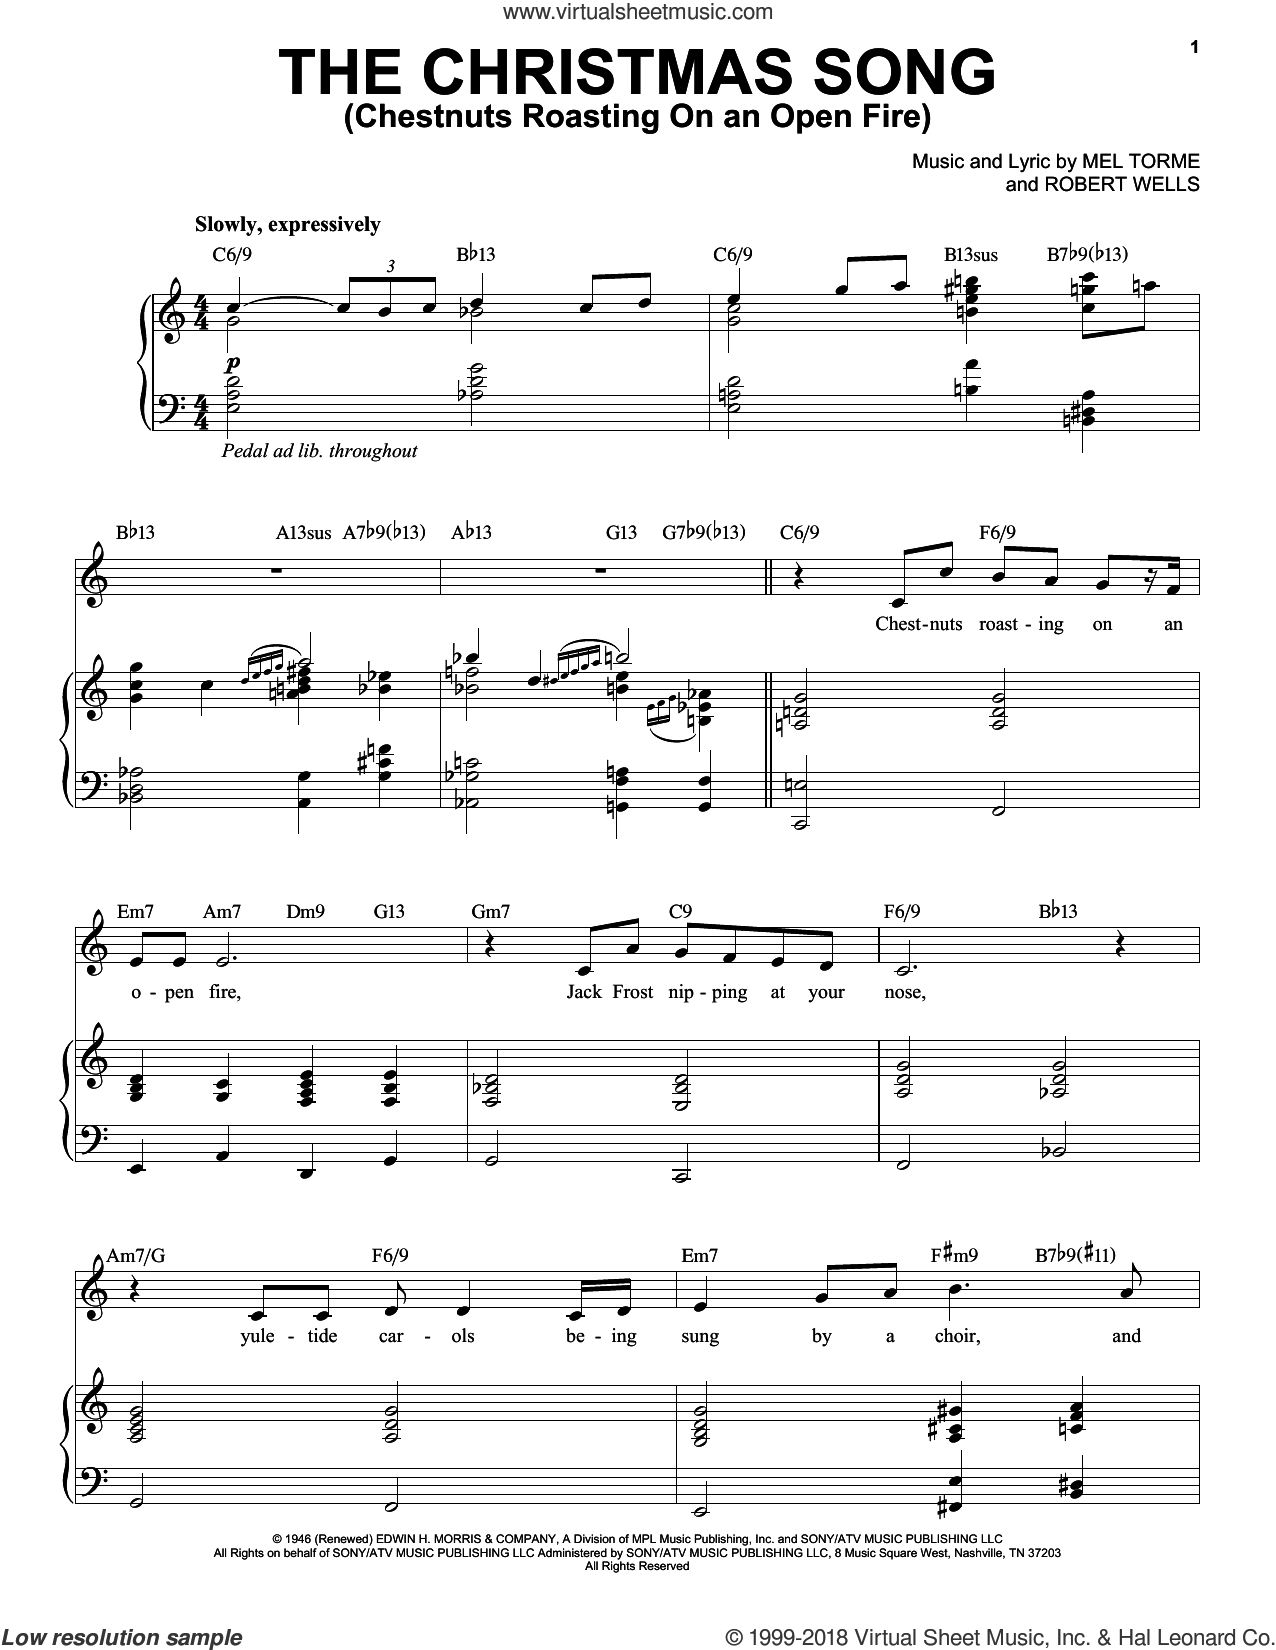 The Christmas Song (Chestnuts Roasting On An Open Fire) sheet music for voice and piano by Michael Buble, Mel Torme and Robert Wells, intermediate